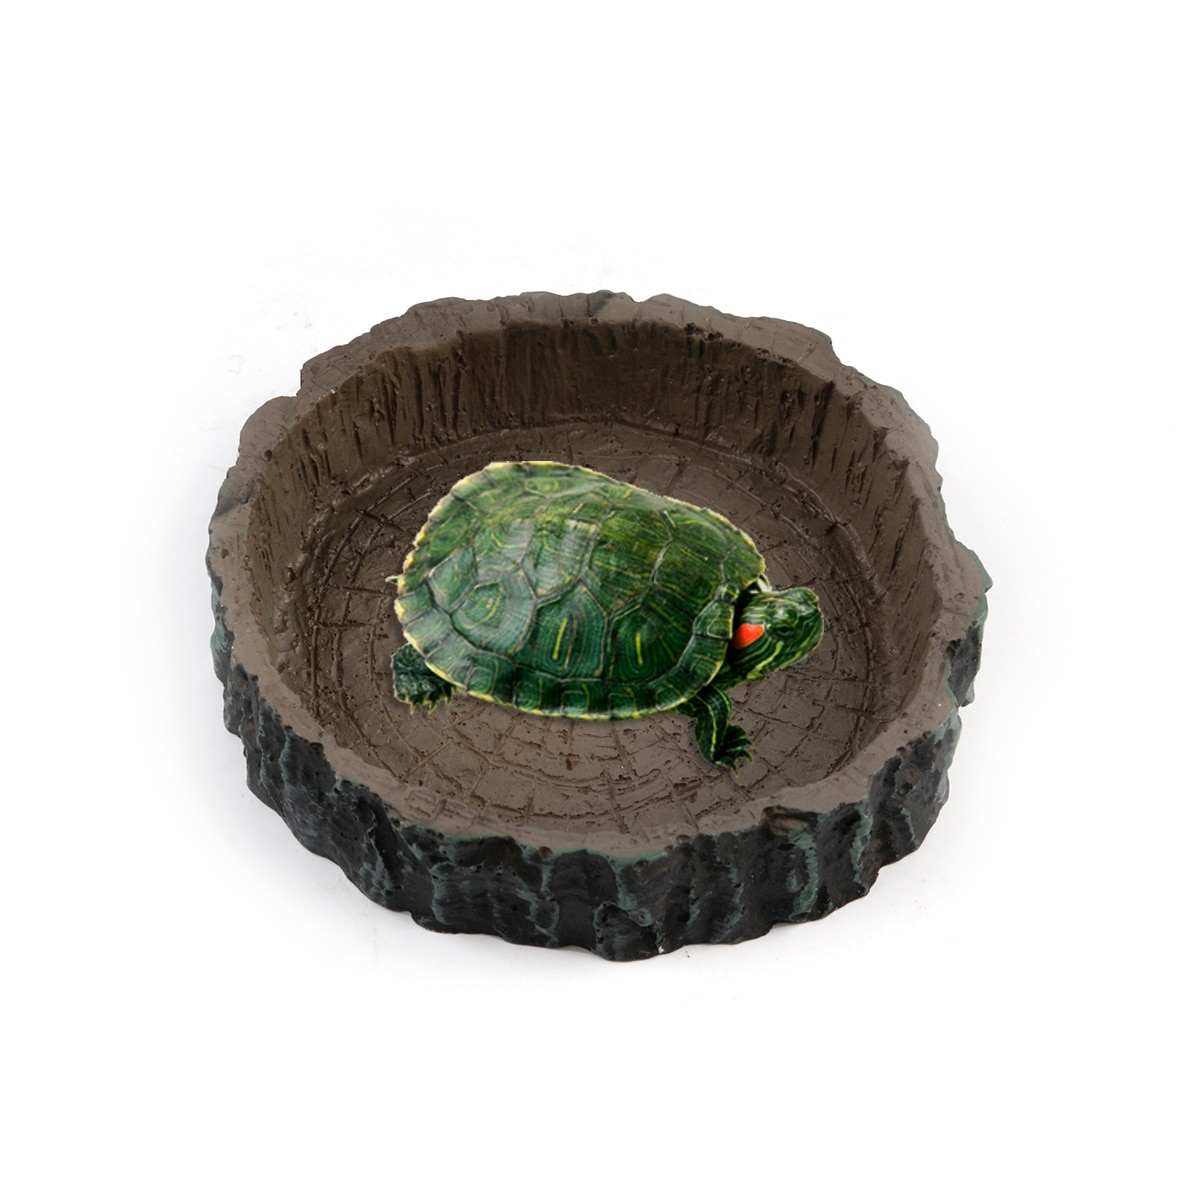 Round Shape Resin Reptile Bowl Water Food Dish Feeder Tortoise Turtle Feeding Tools Supplies For Amphibians Fish Tank Decorations